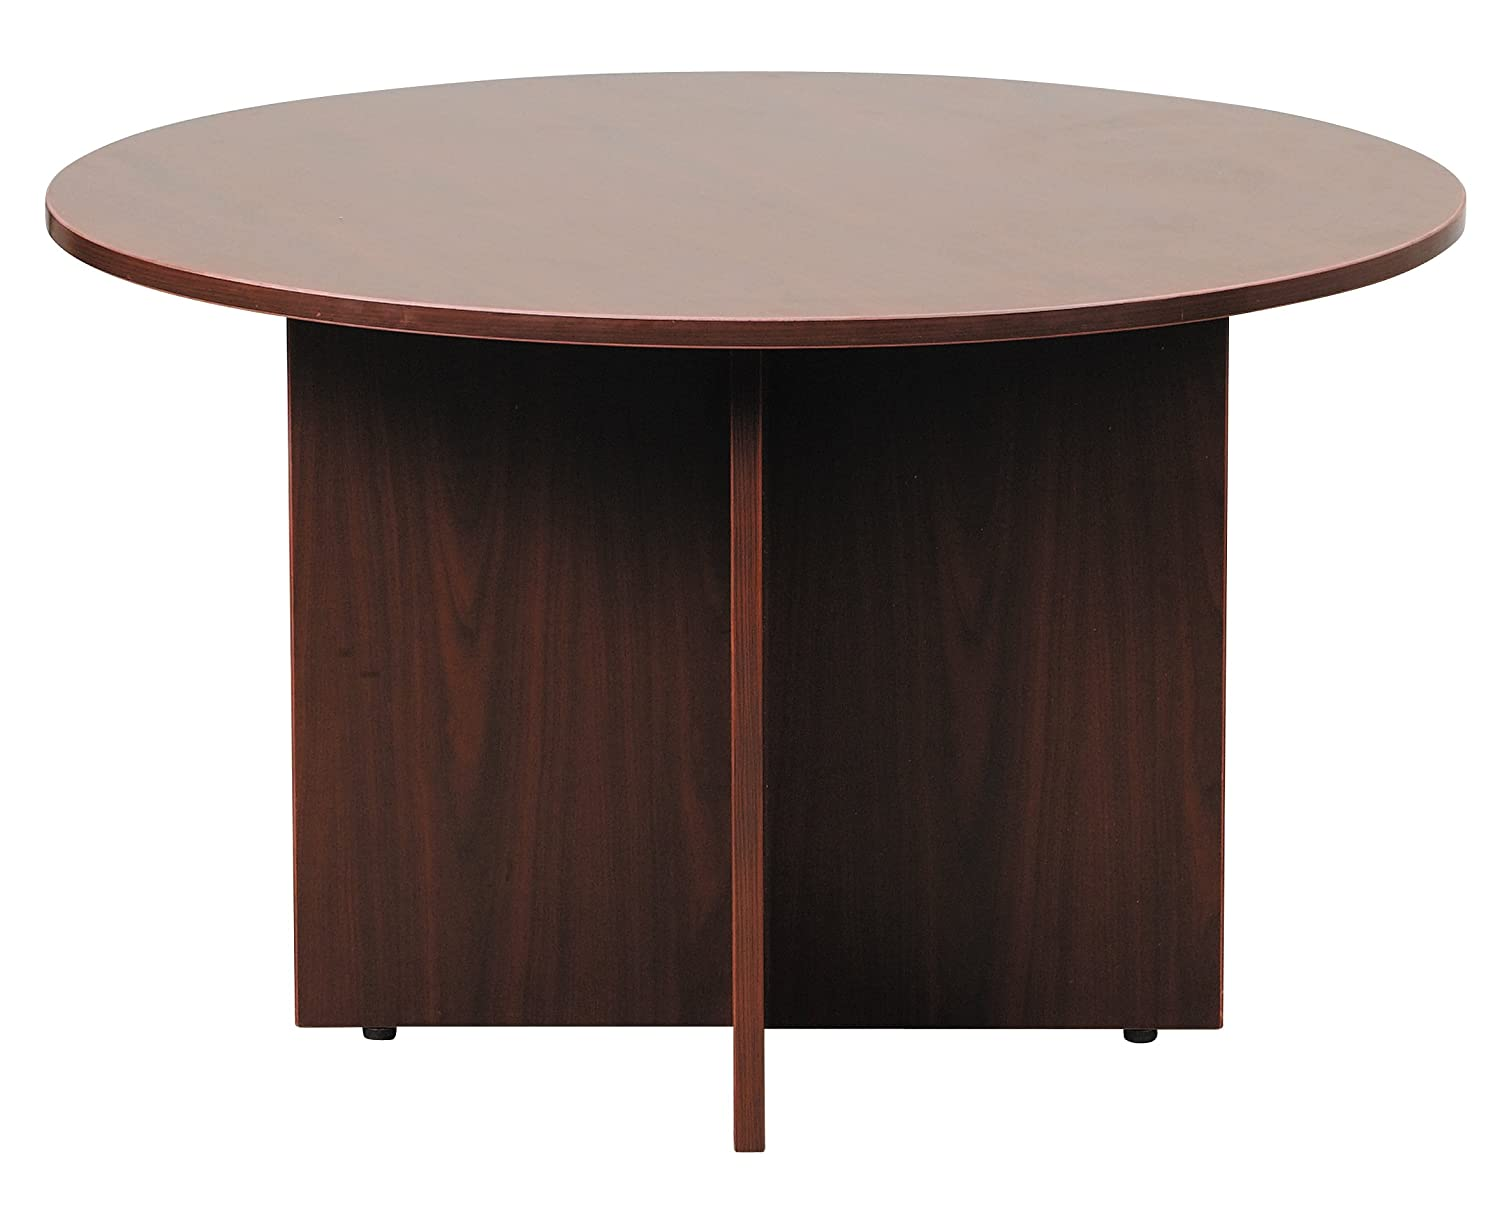 Boss Office Products N123-C 47 in Round Table in Cherry